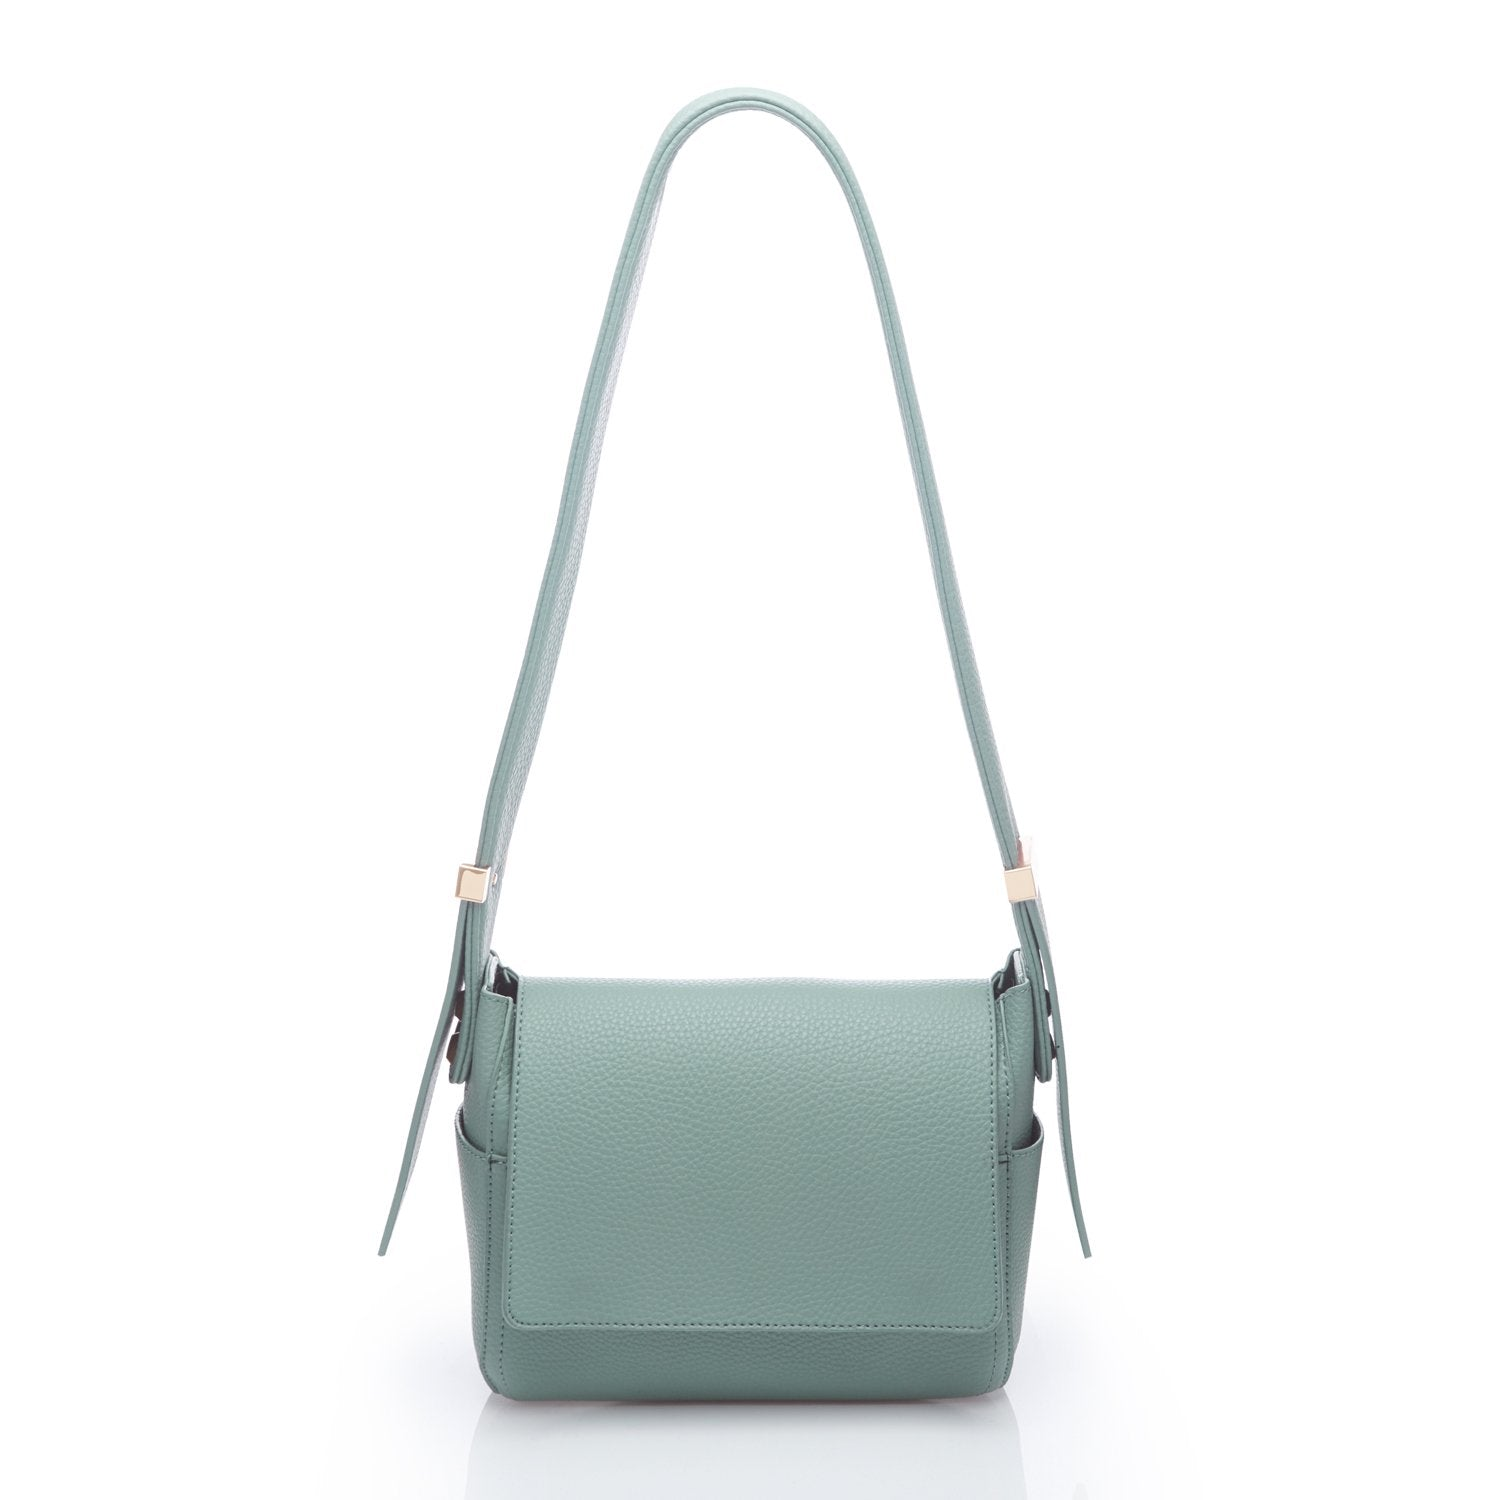 RIBAG MINI - TEAL